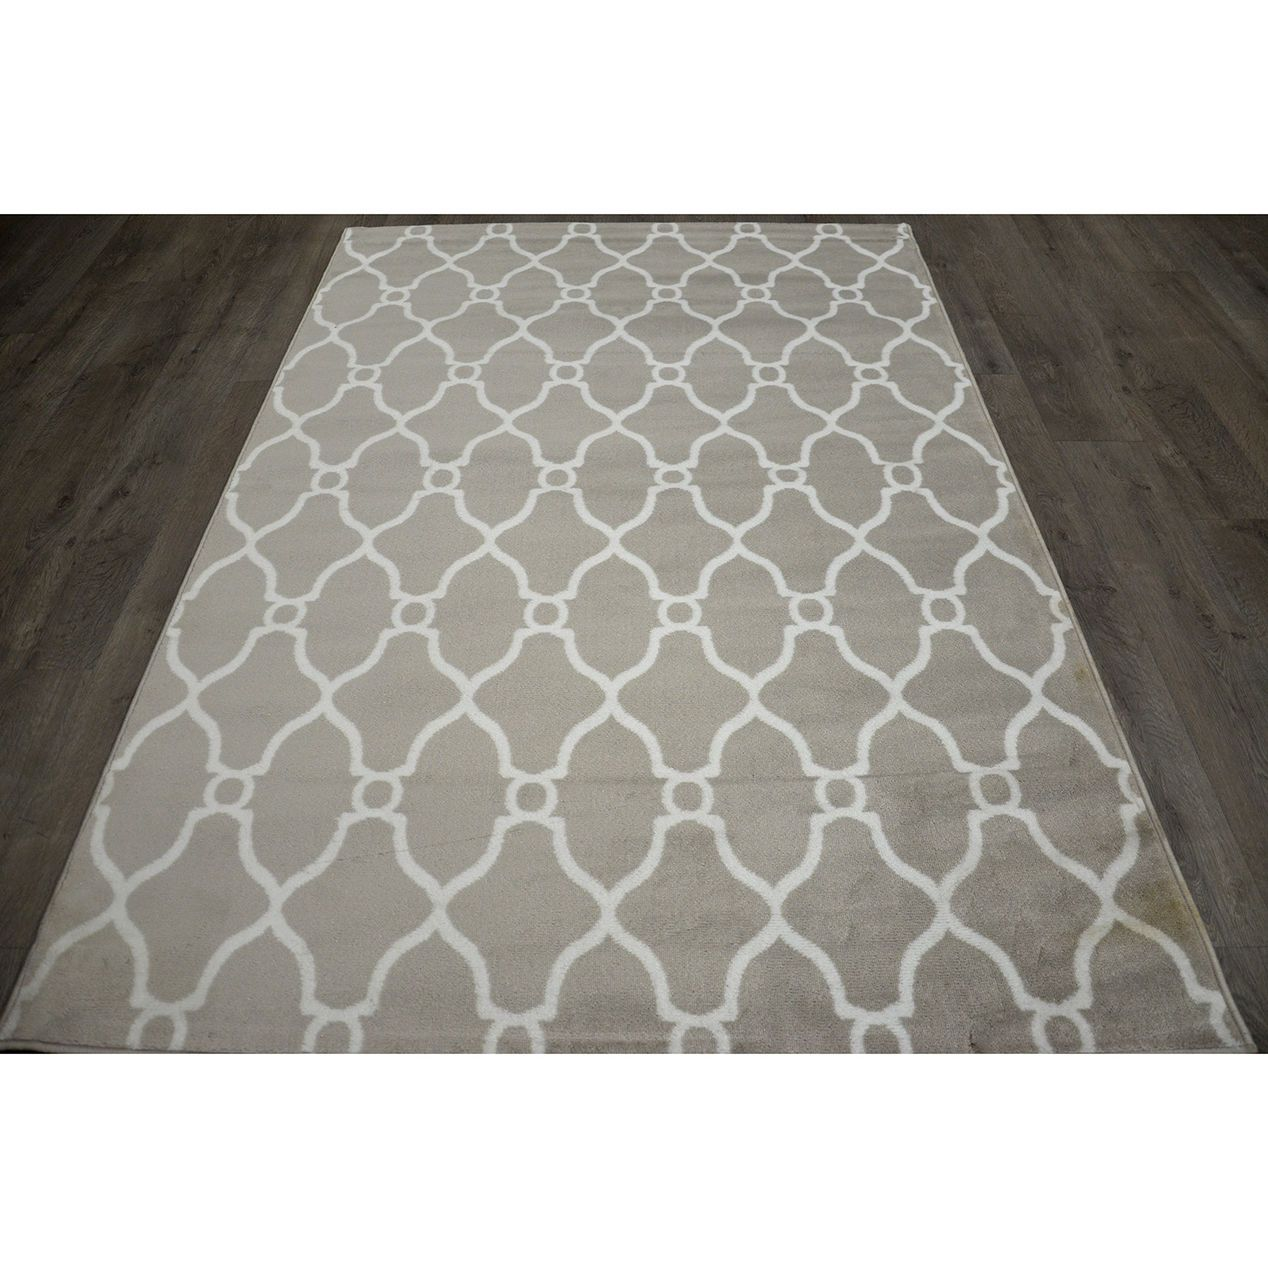 Gray And White Moroccan Rug 10 X 12 Ft White Moroccan Rugs Moroccan Rug Cool Rugs